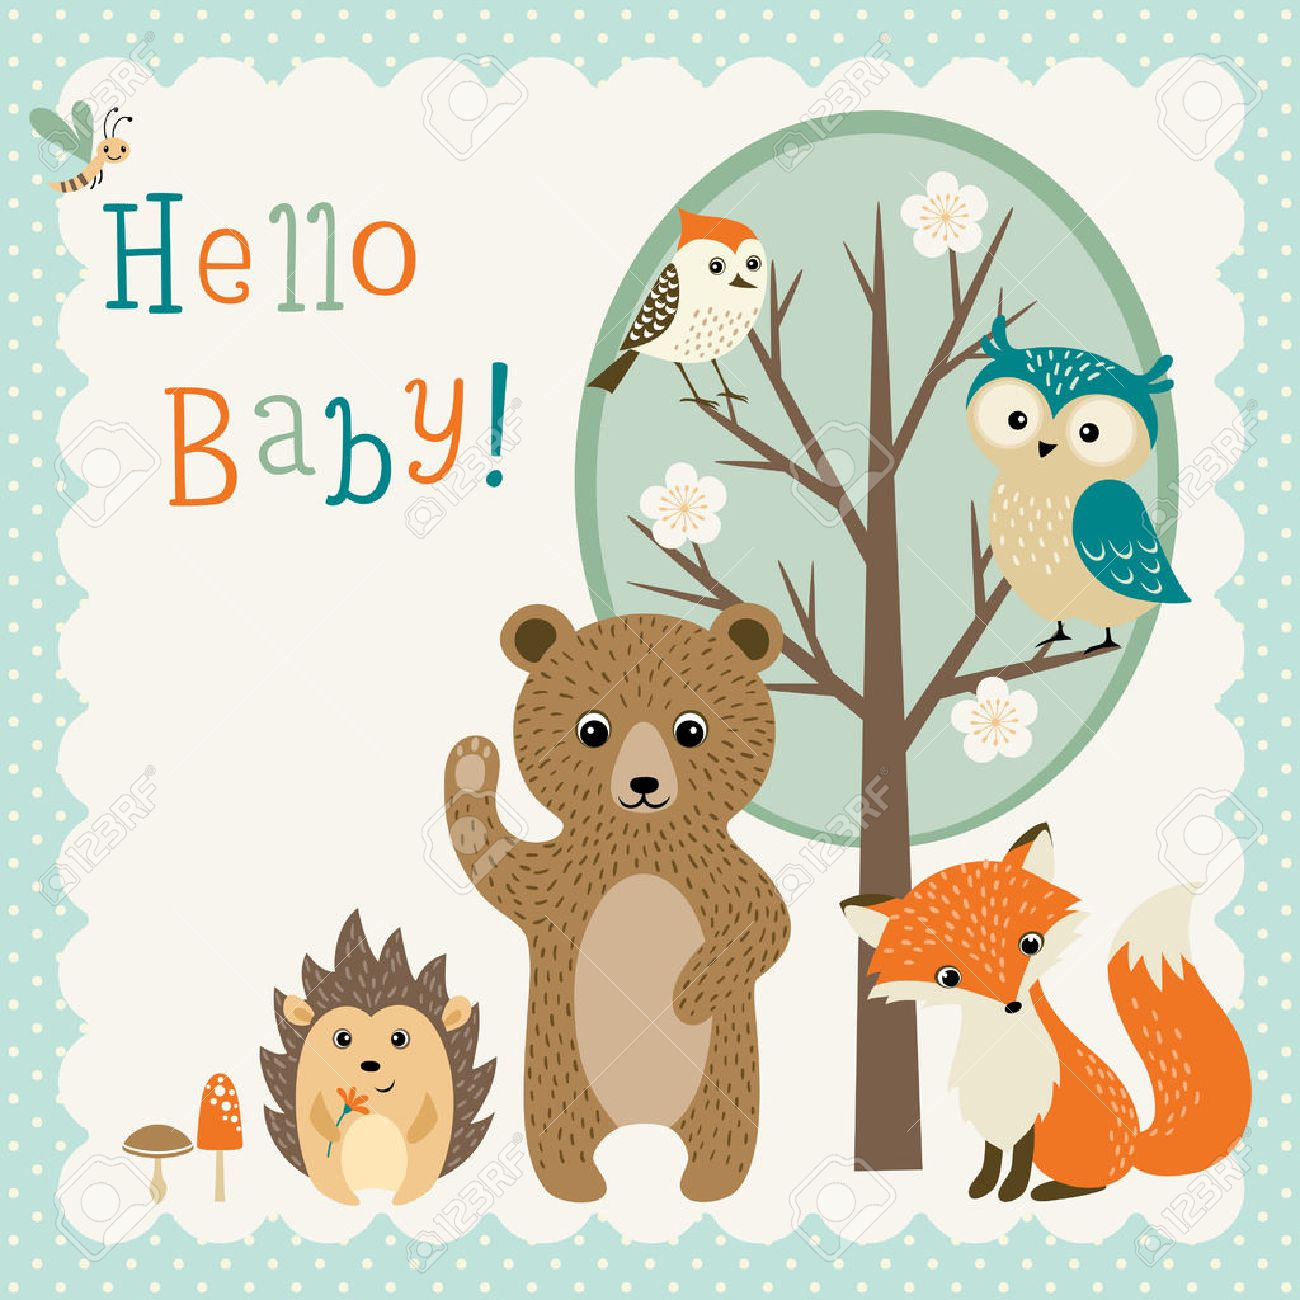 Baby Shower Design With Cute Woodland Animals. Stock Vector   41214419